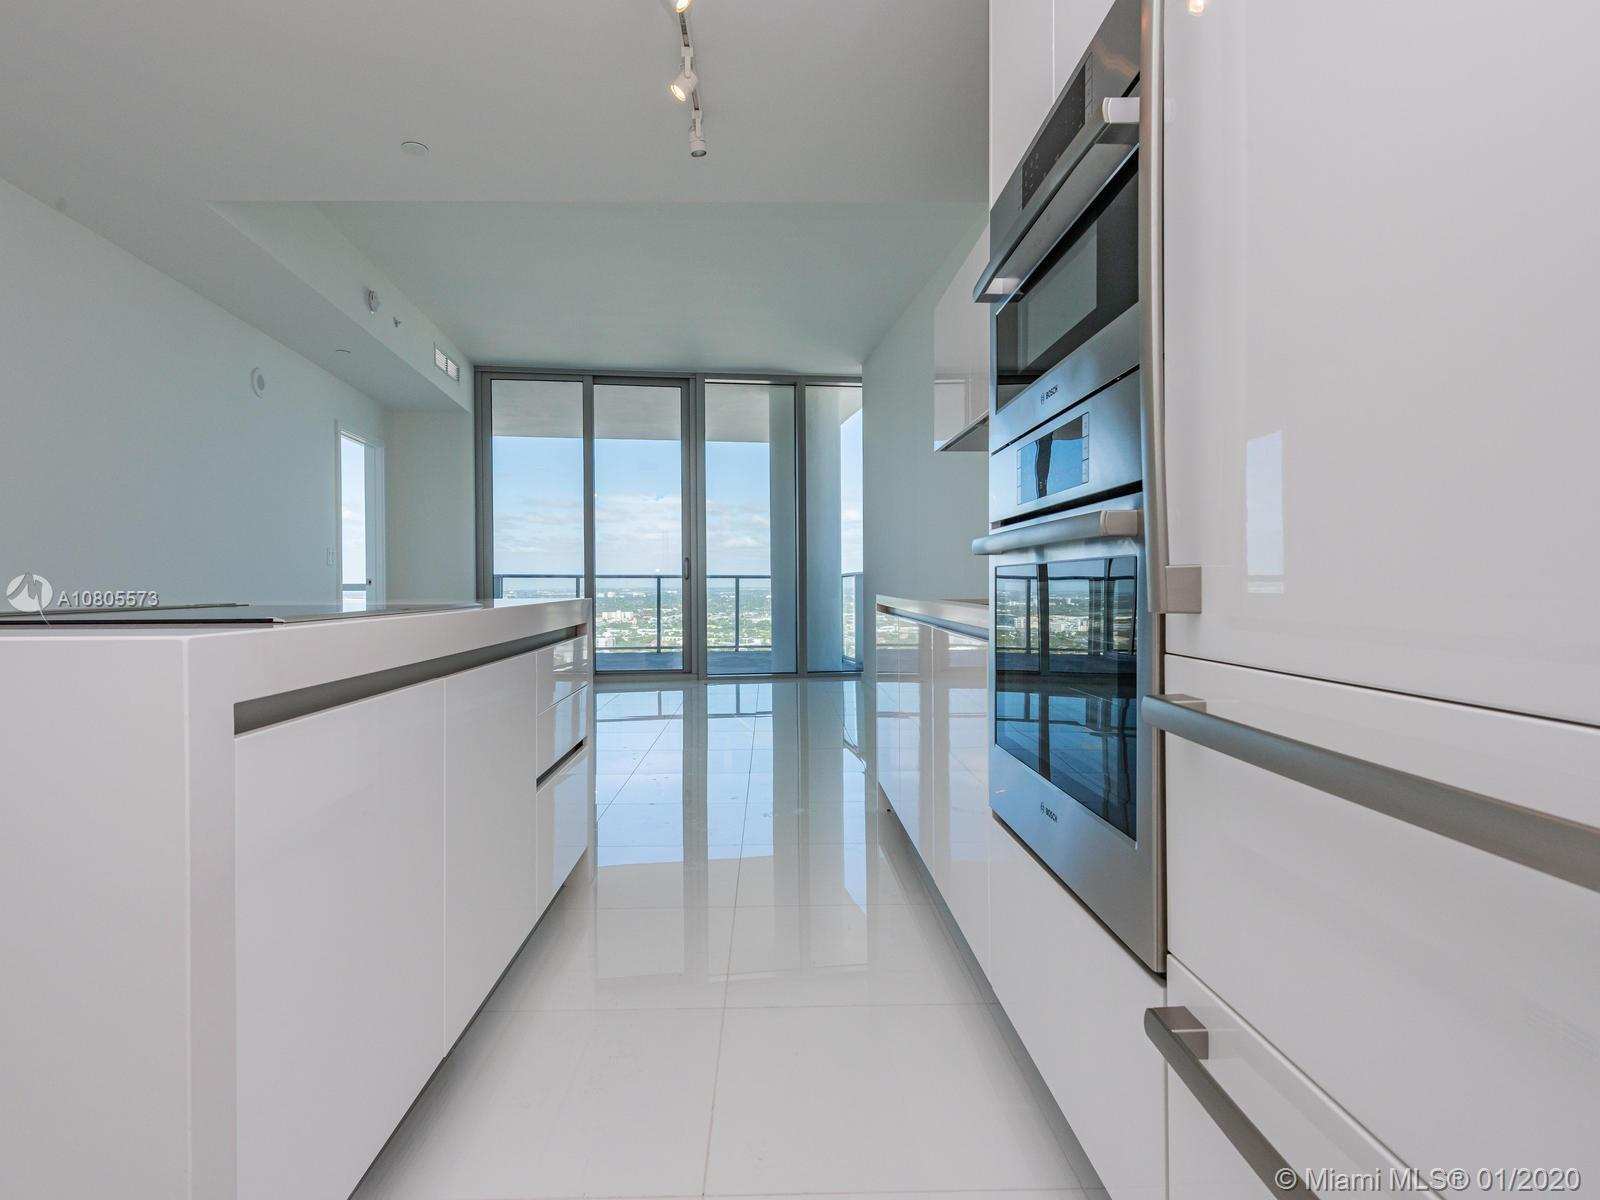 Paramount World Center! Bright and spacious 1 Bedroom + Den, 1145 SF interior and 201 SF terrace. A